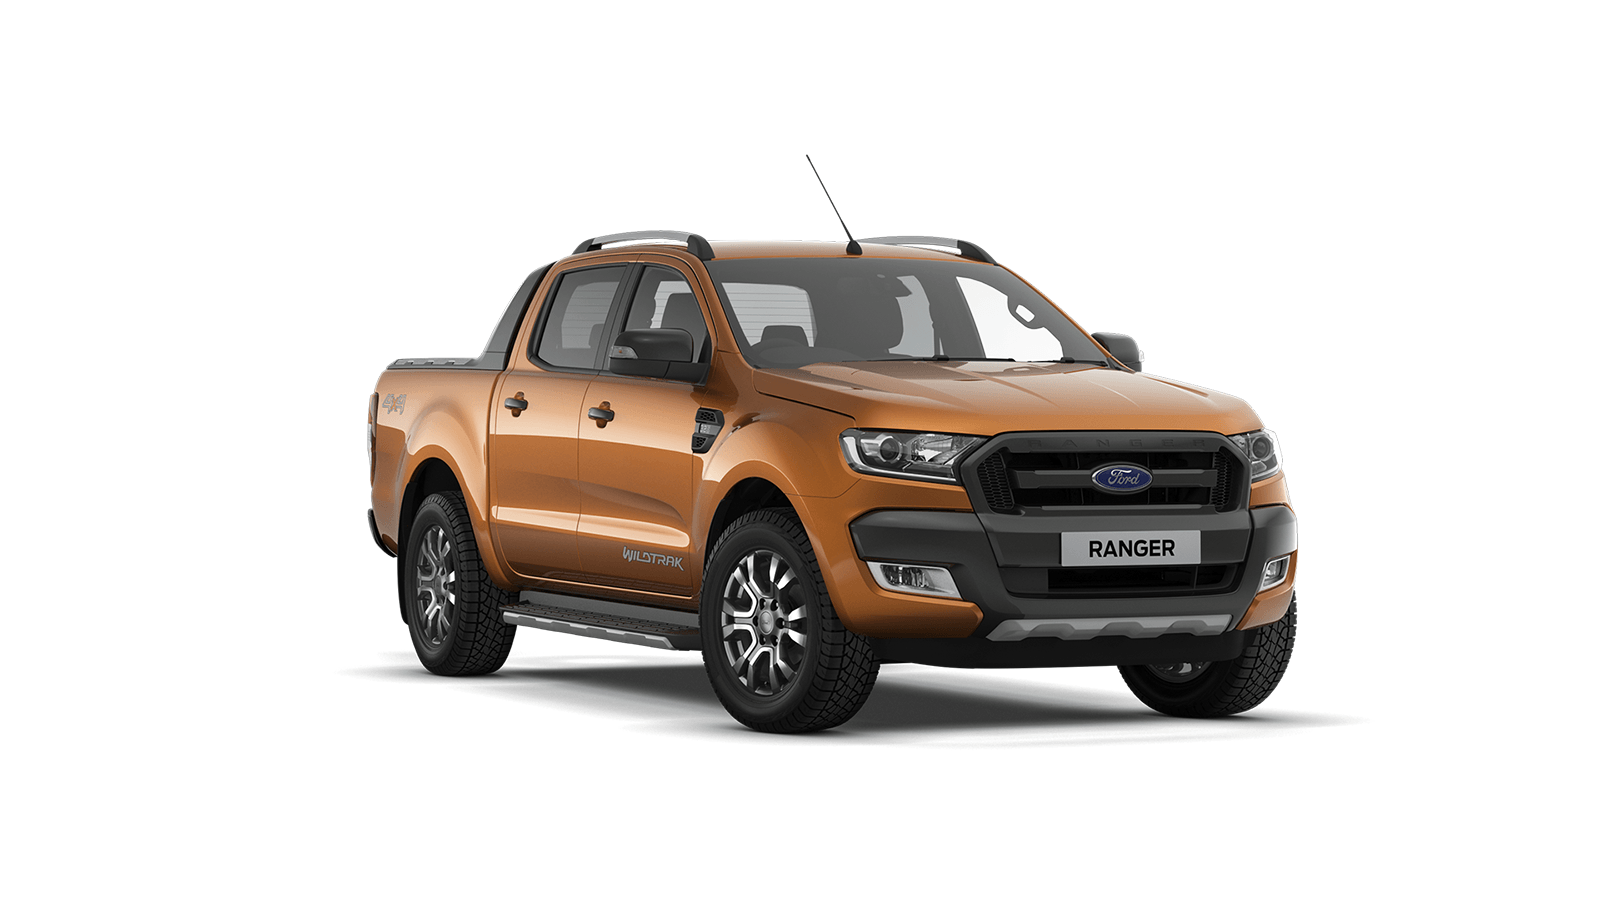 RANGER Wildtrak Double Cab in Pride Orange